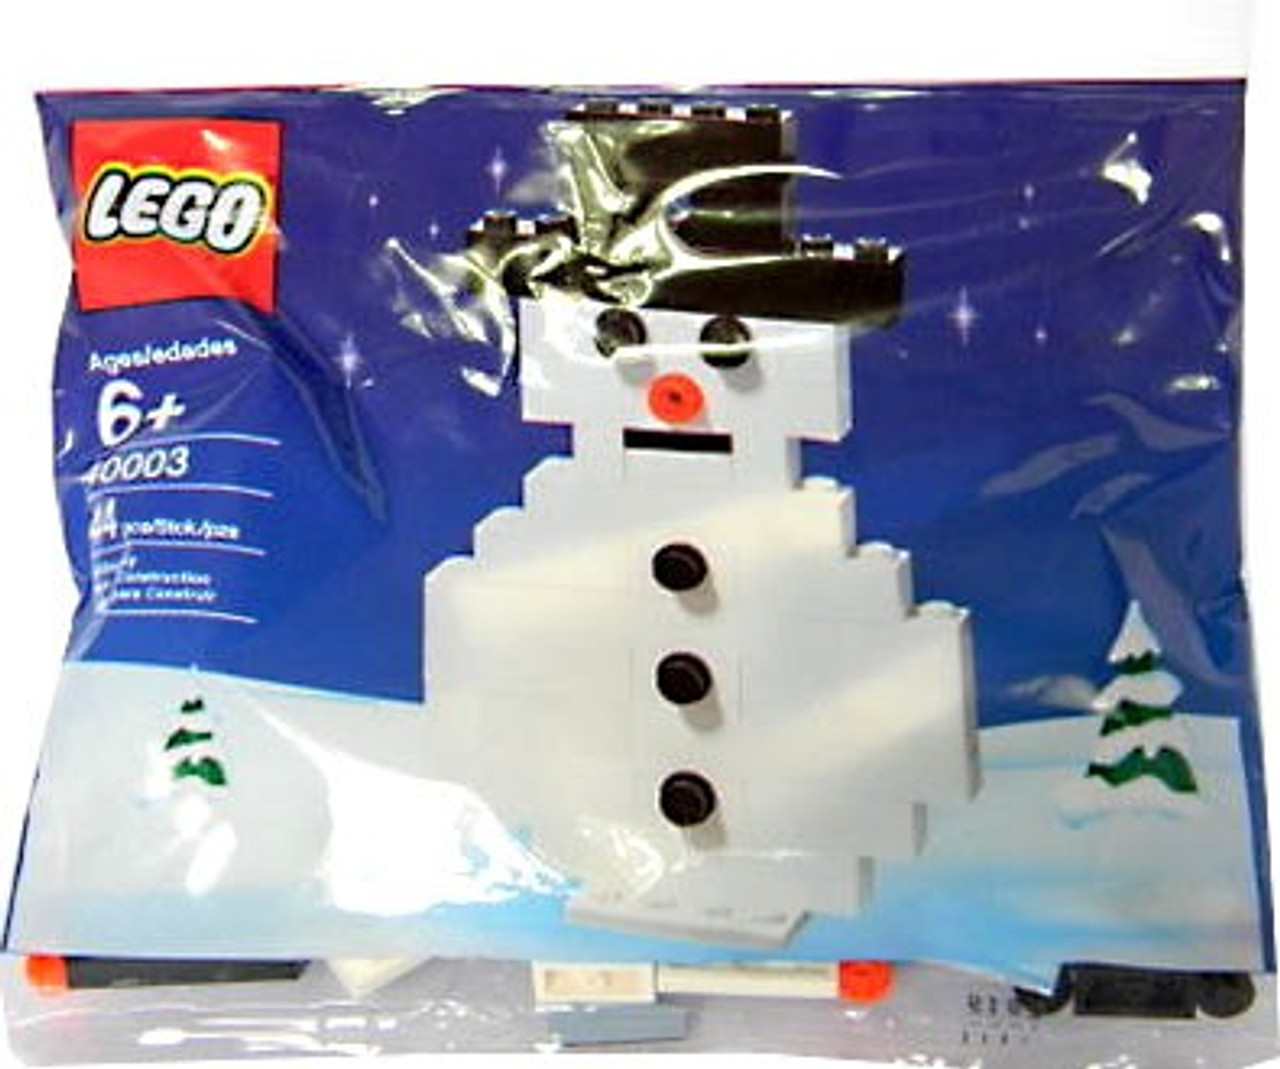 LEGO Snowman Mini Set #40003 [Bagged]